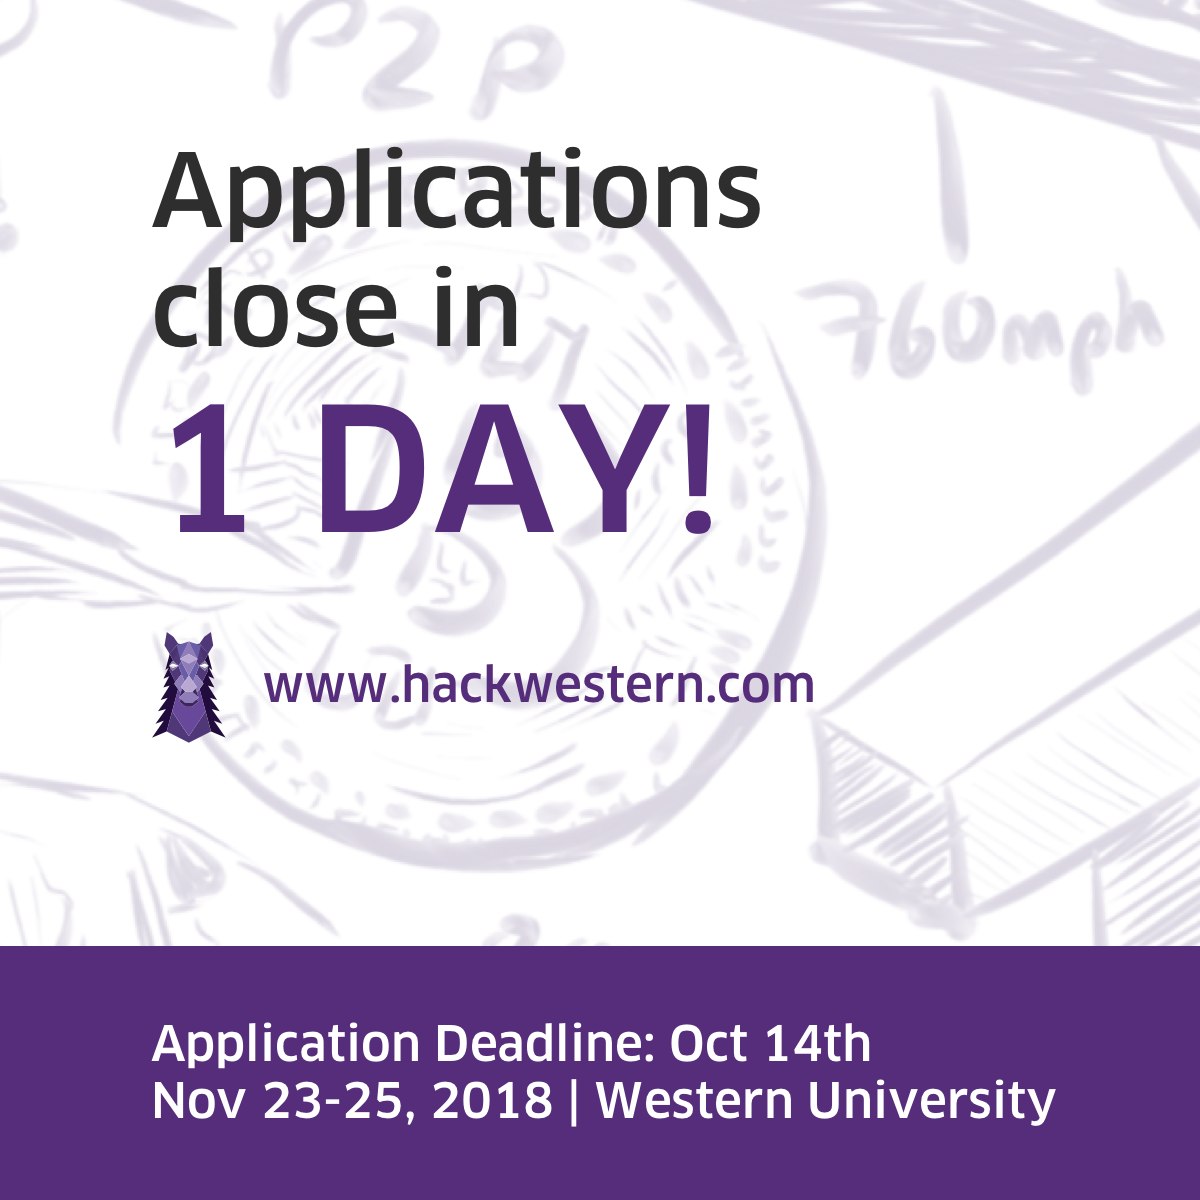 8de42f65 Head on over to https://hackwestern.com and apply! Have any questions? Email  us at hello@hackwestern.compic.twitter.com/M4QYmB26zq